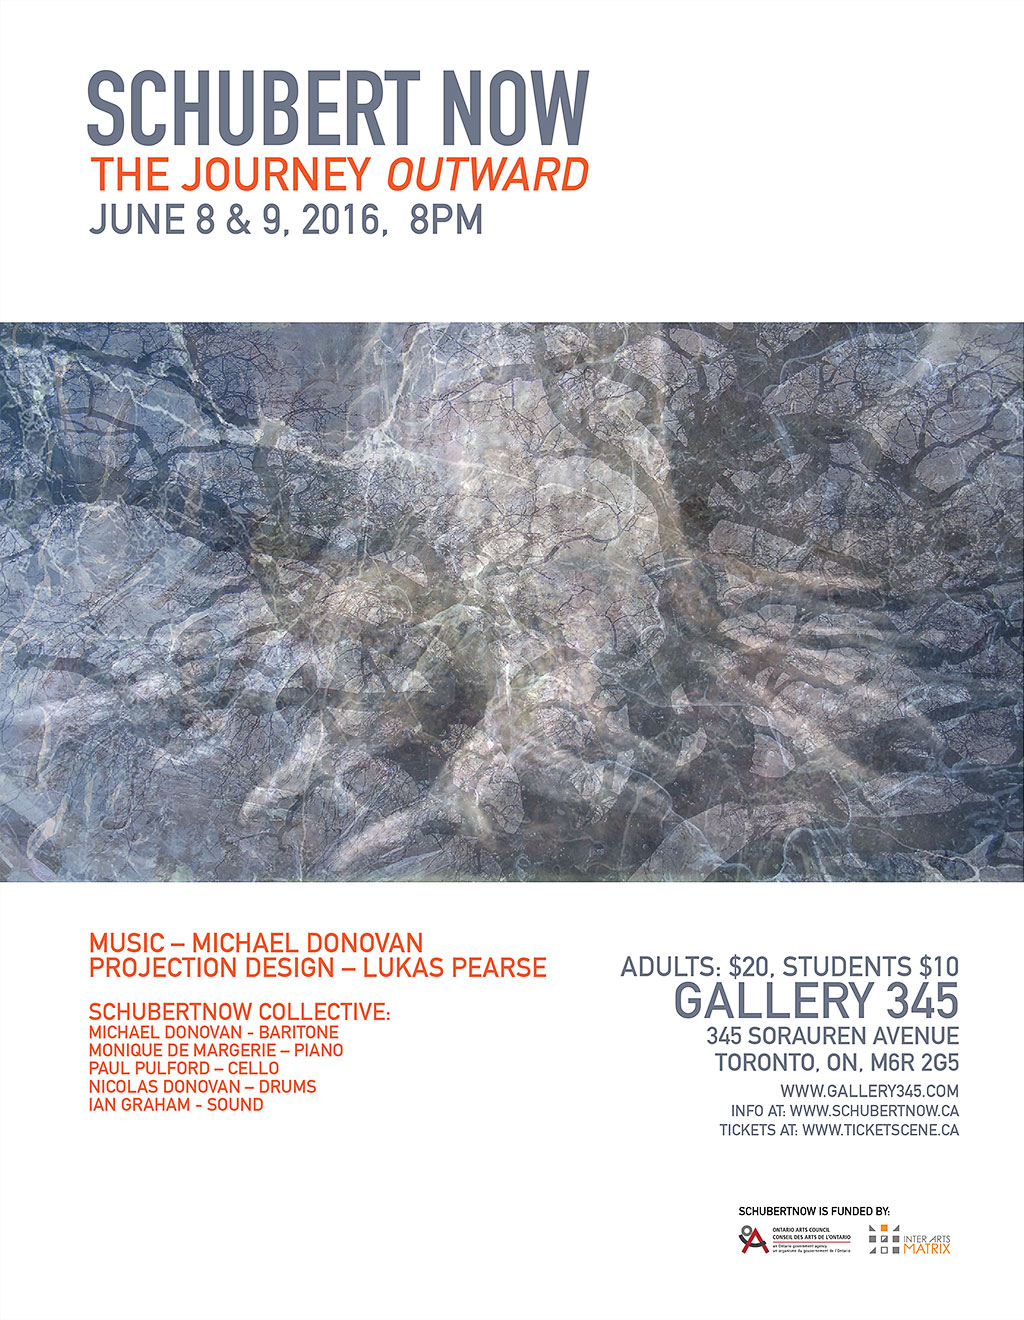 Schubert Now the Journey Outward